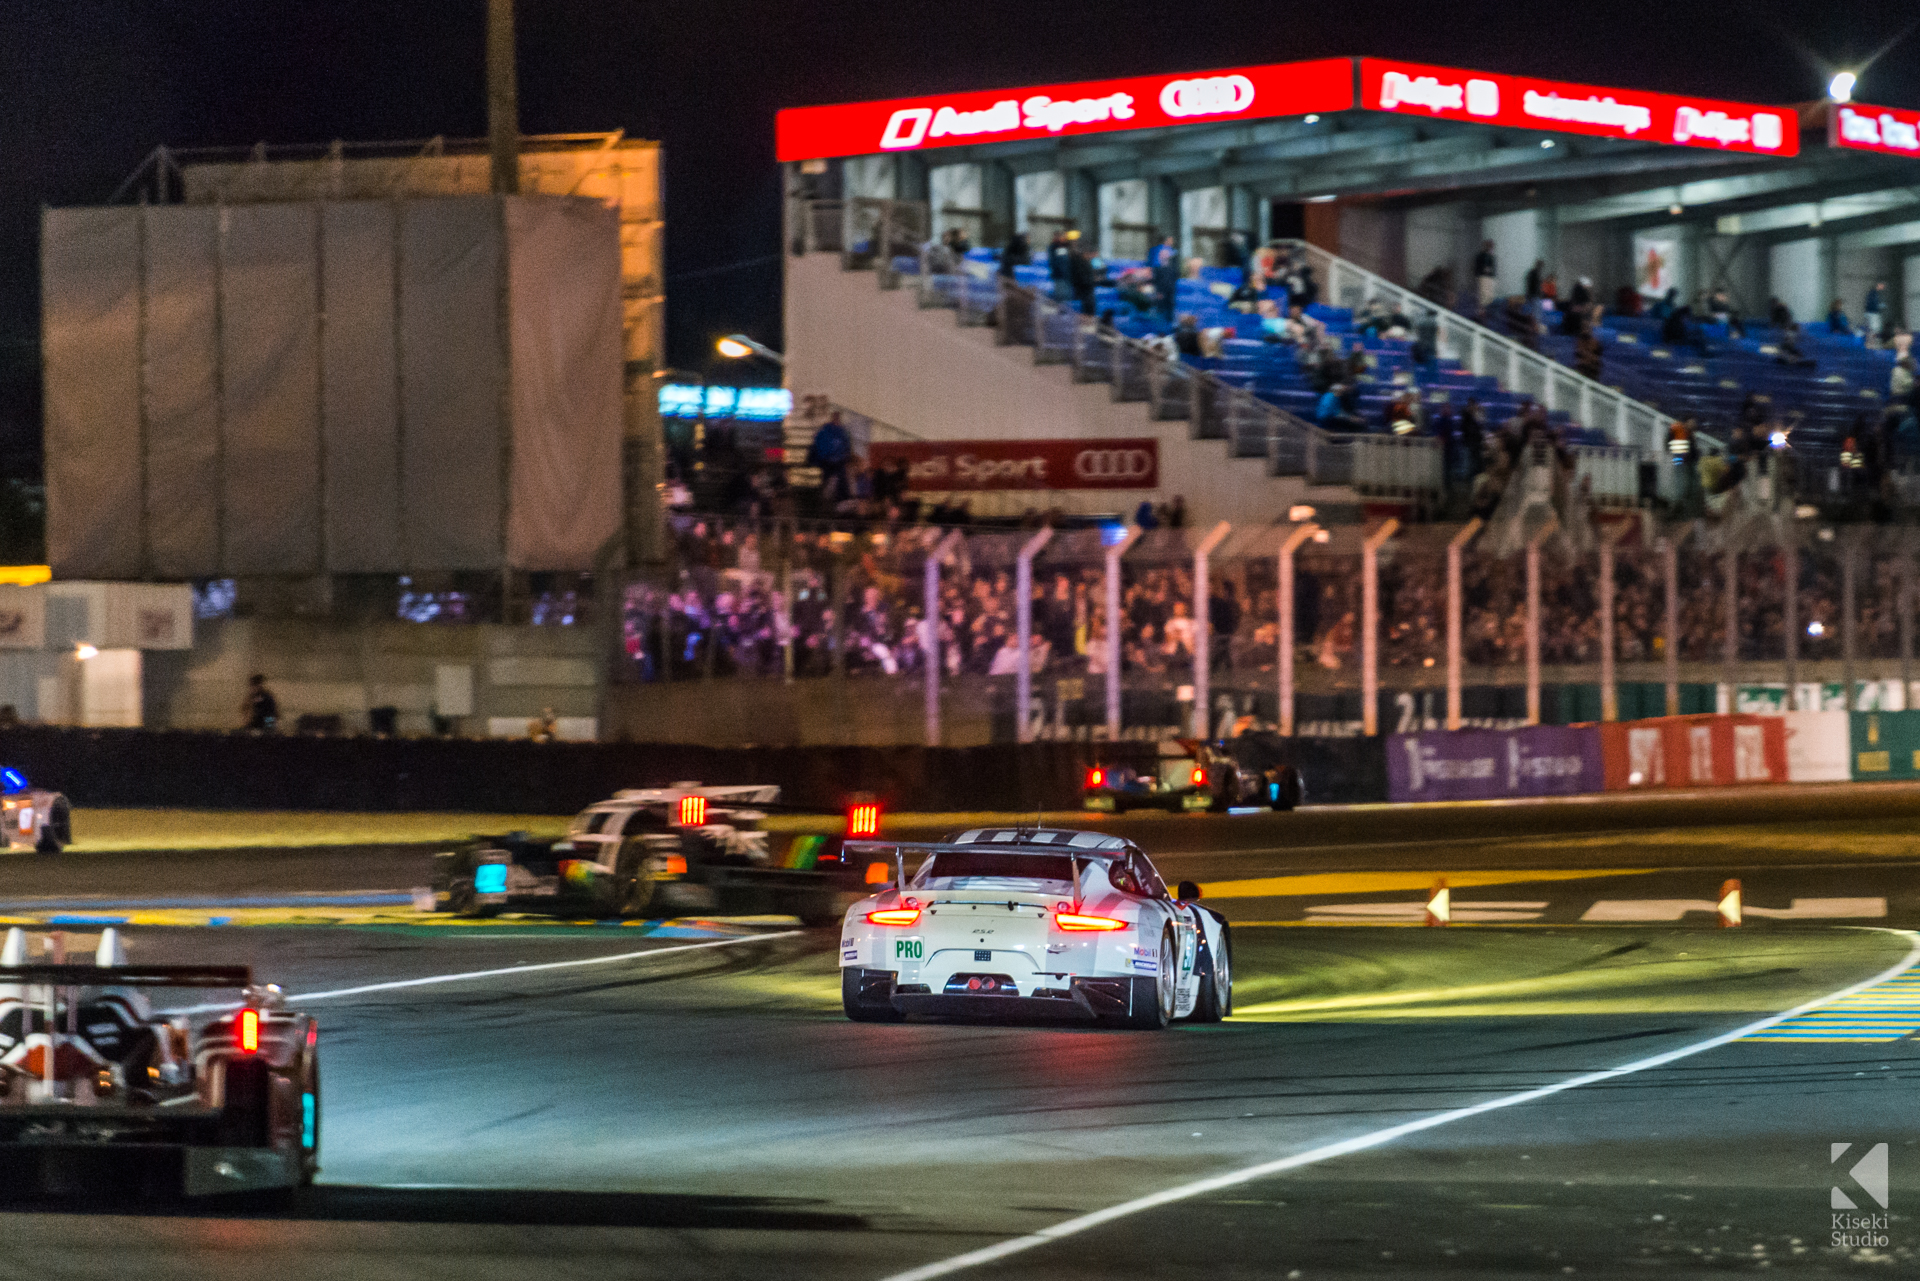 24 Hours of Le Mans 2015 - Start Finish at Night